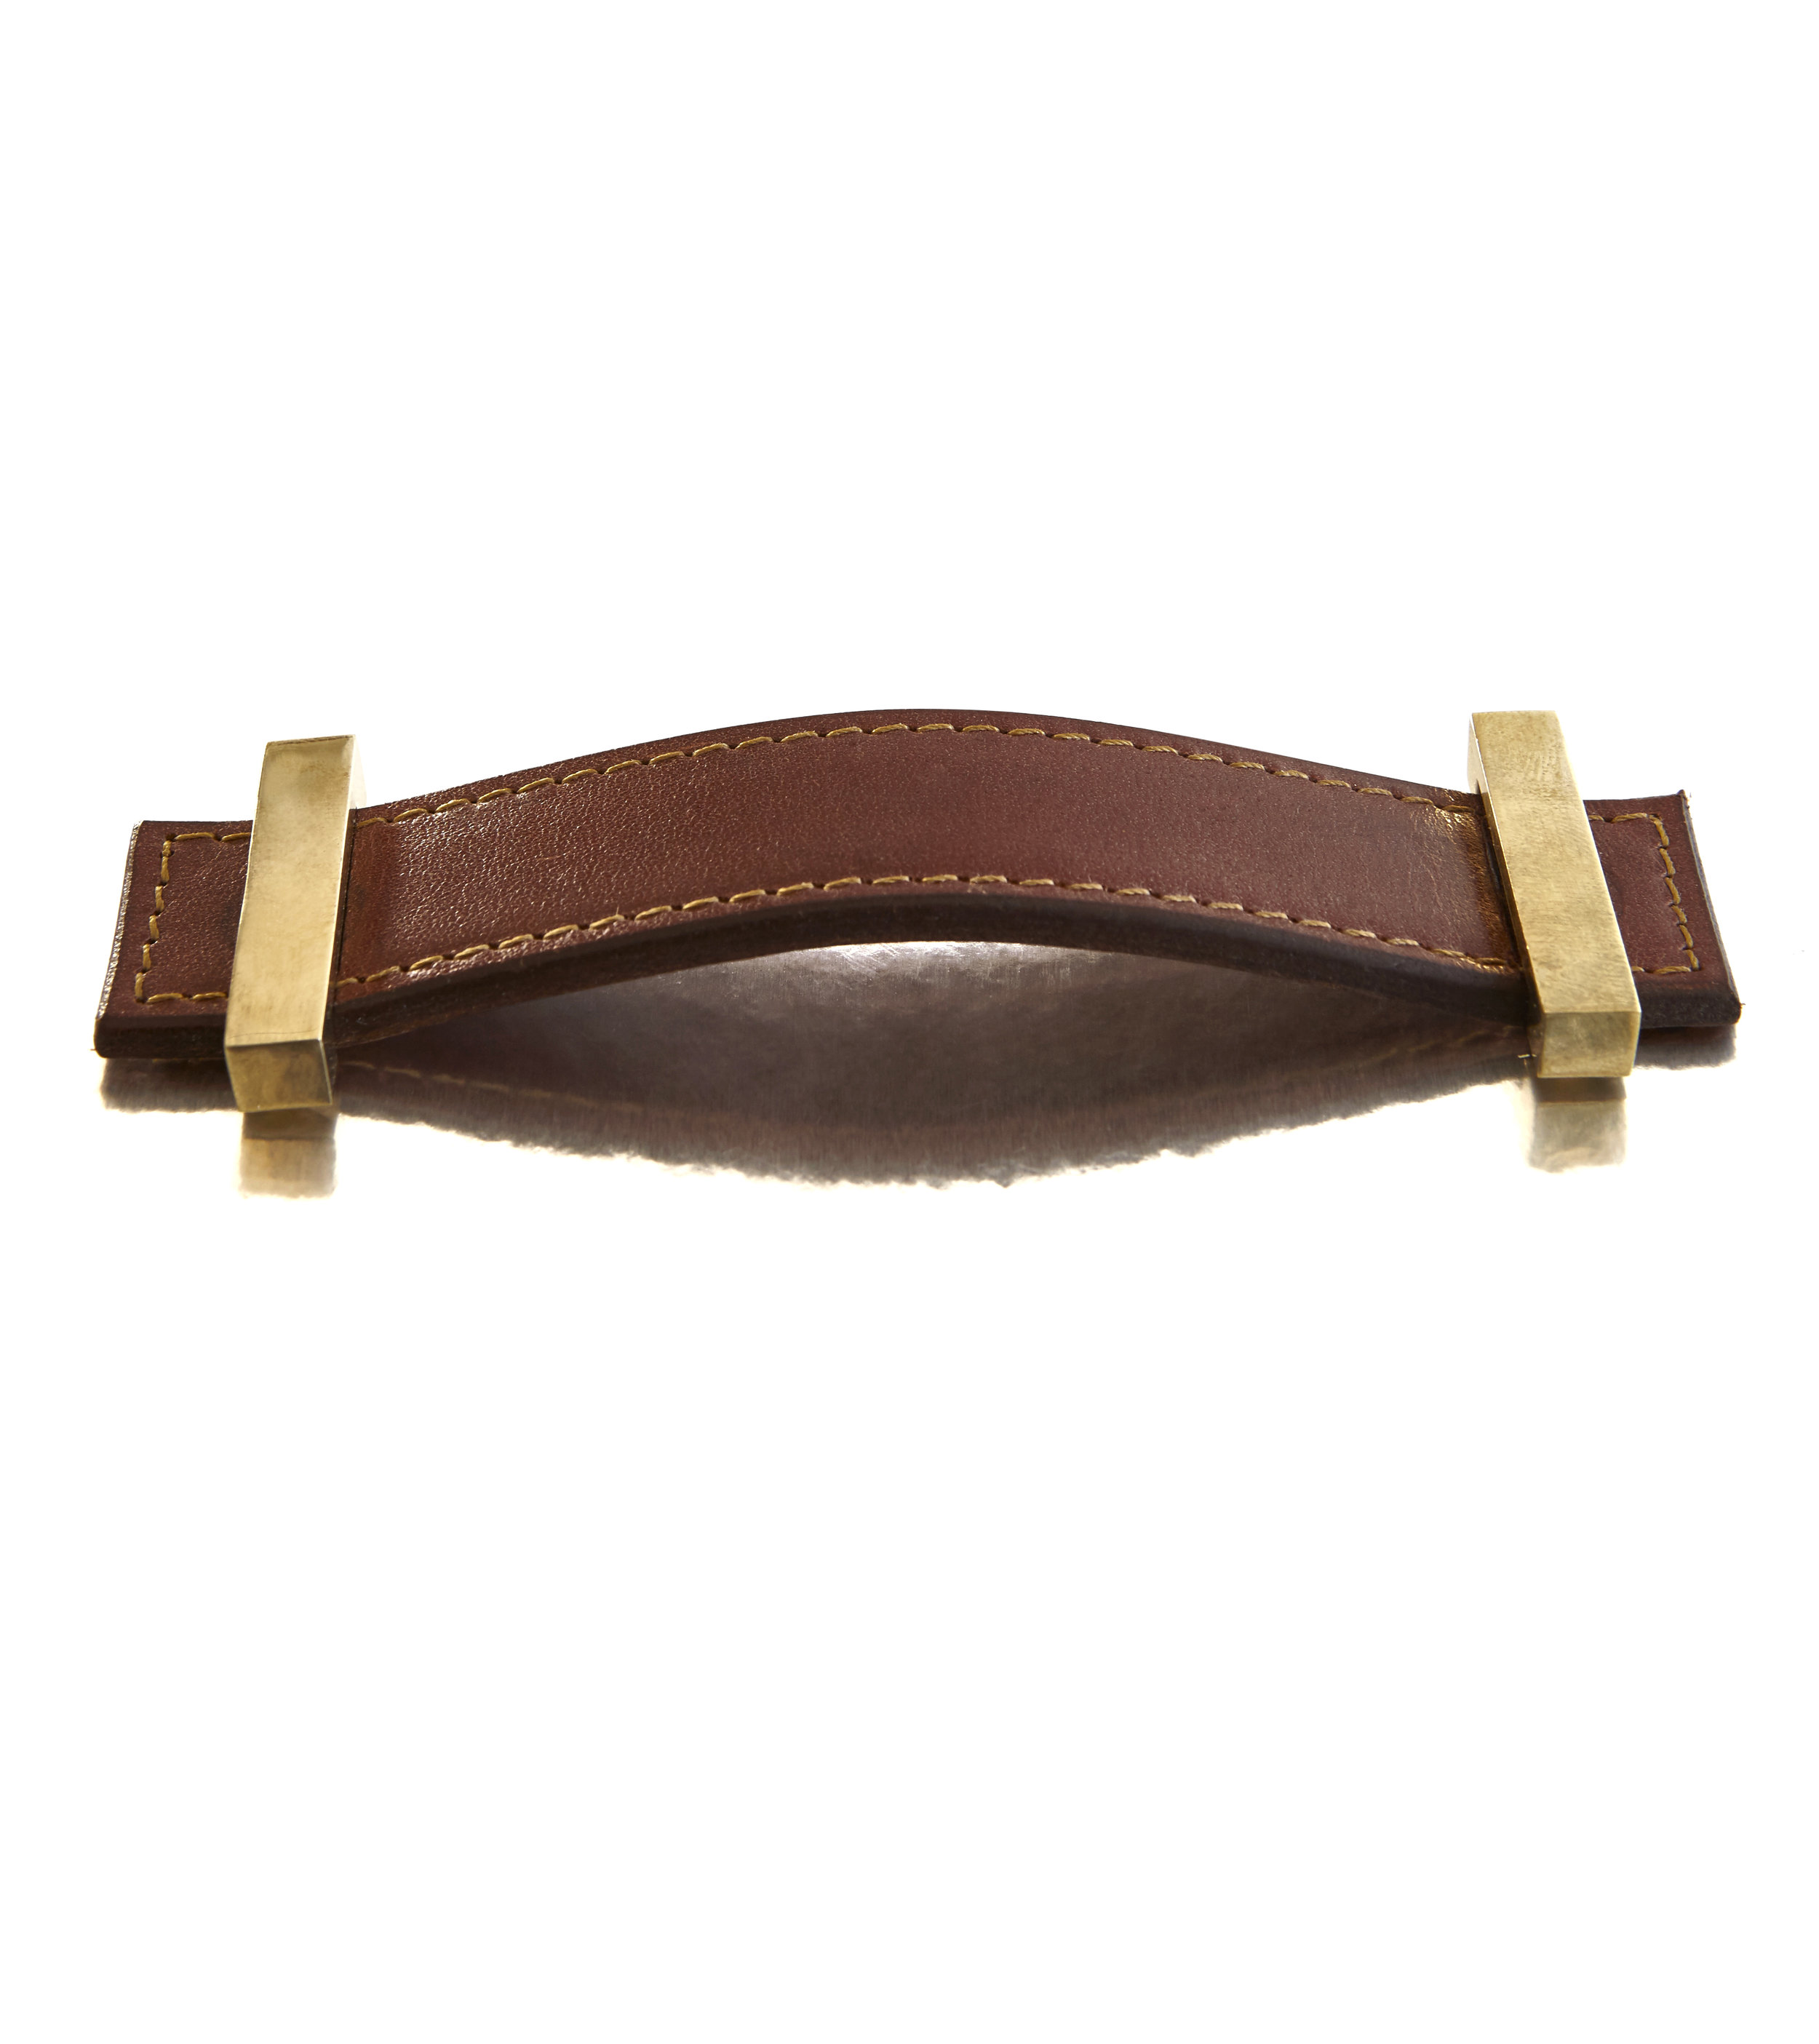 SUIT STRAP I SADDLE I EQUESTRIAN  Polished Brass & Stitched Leather